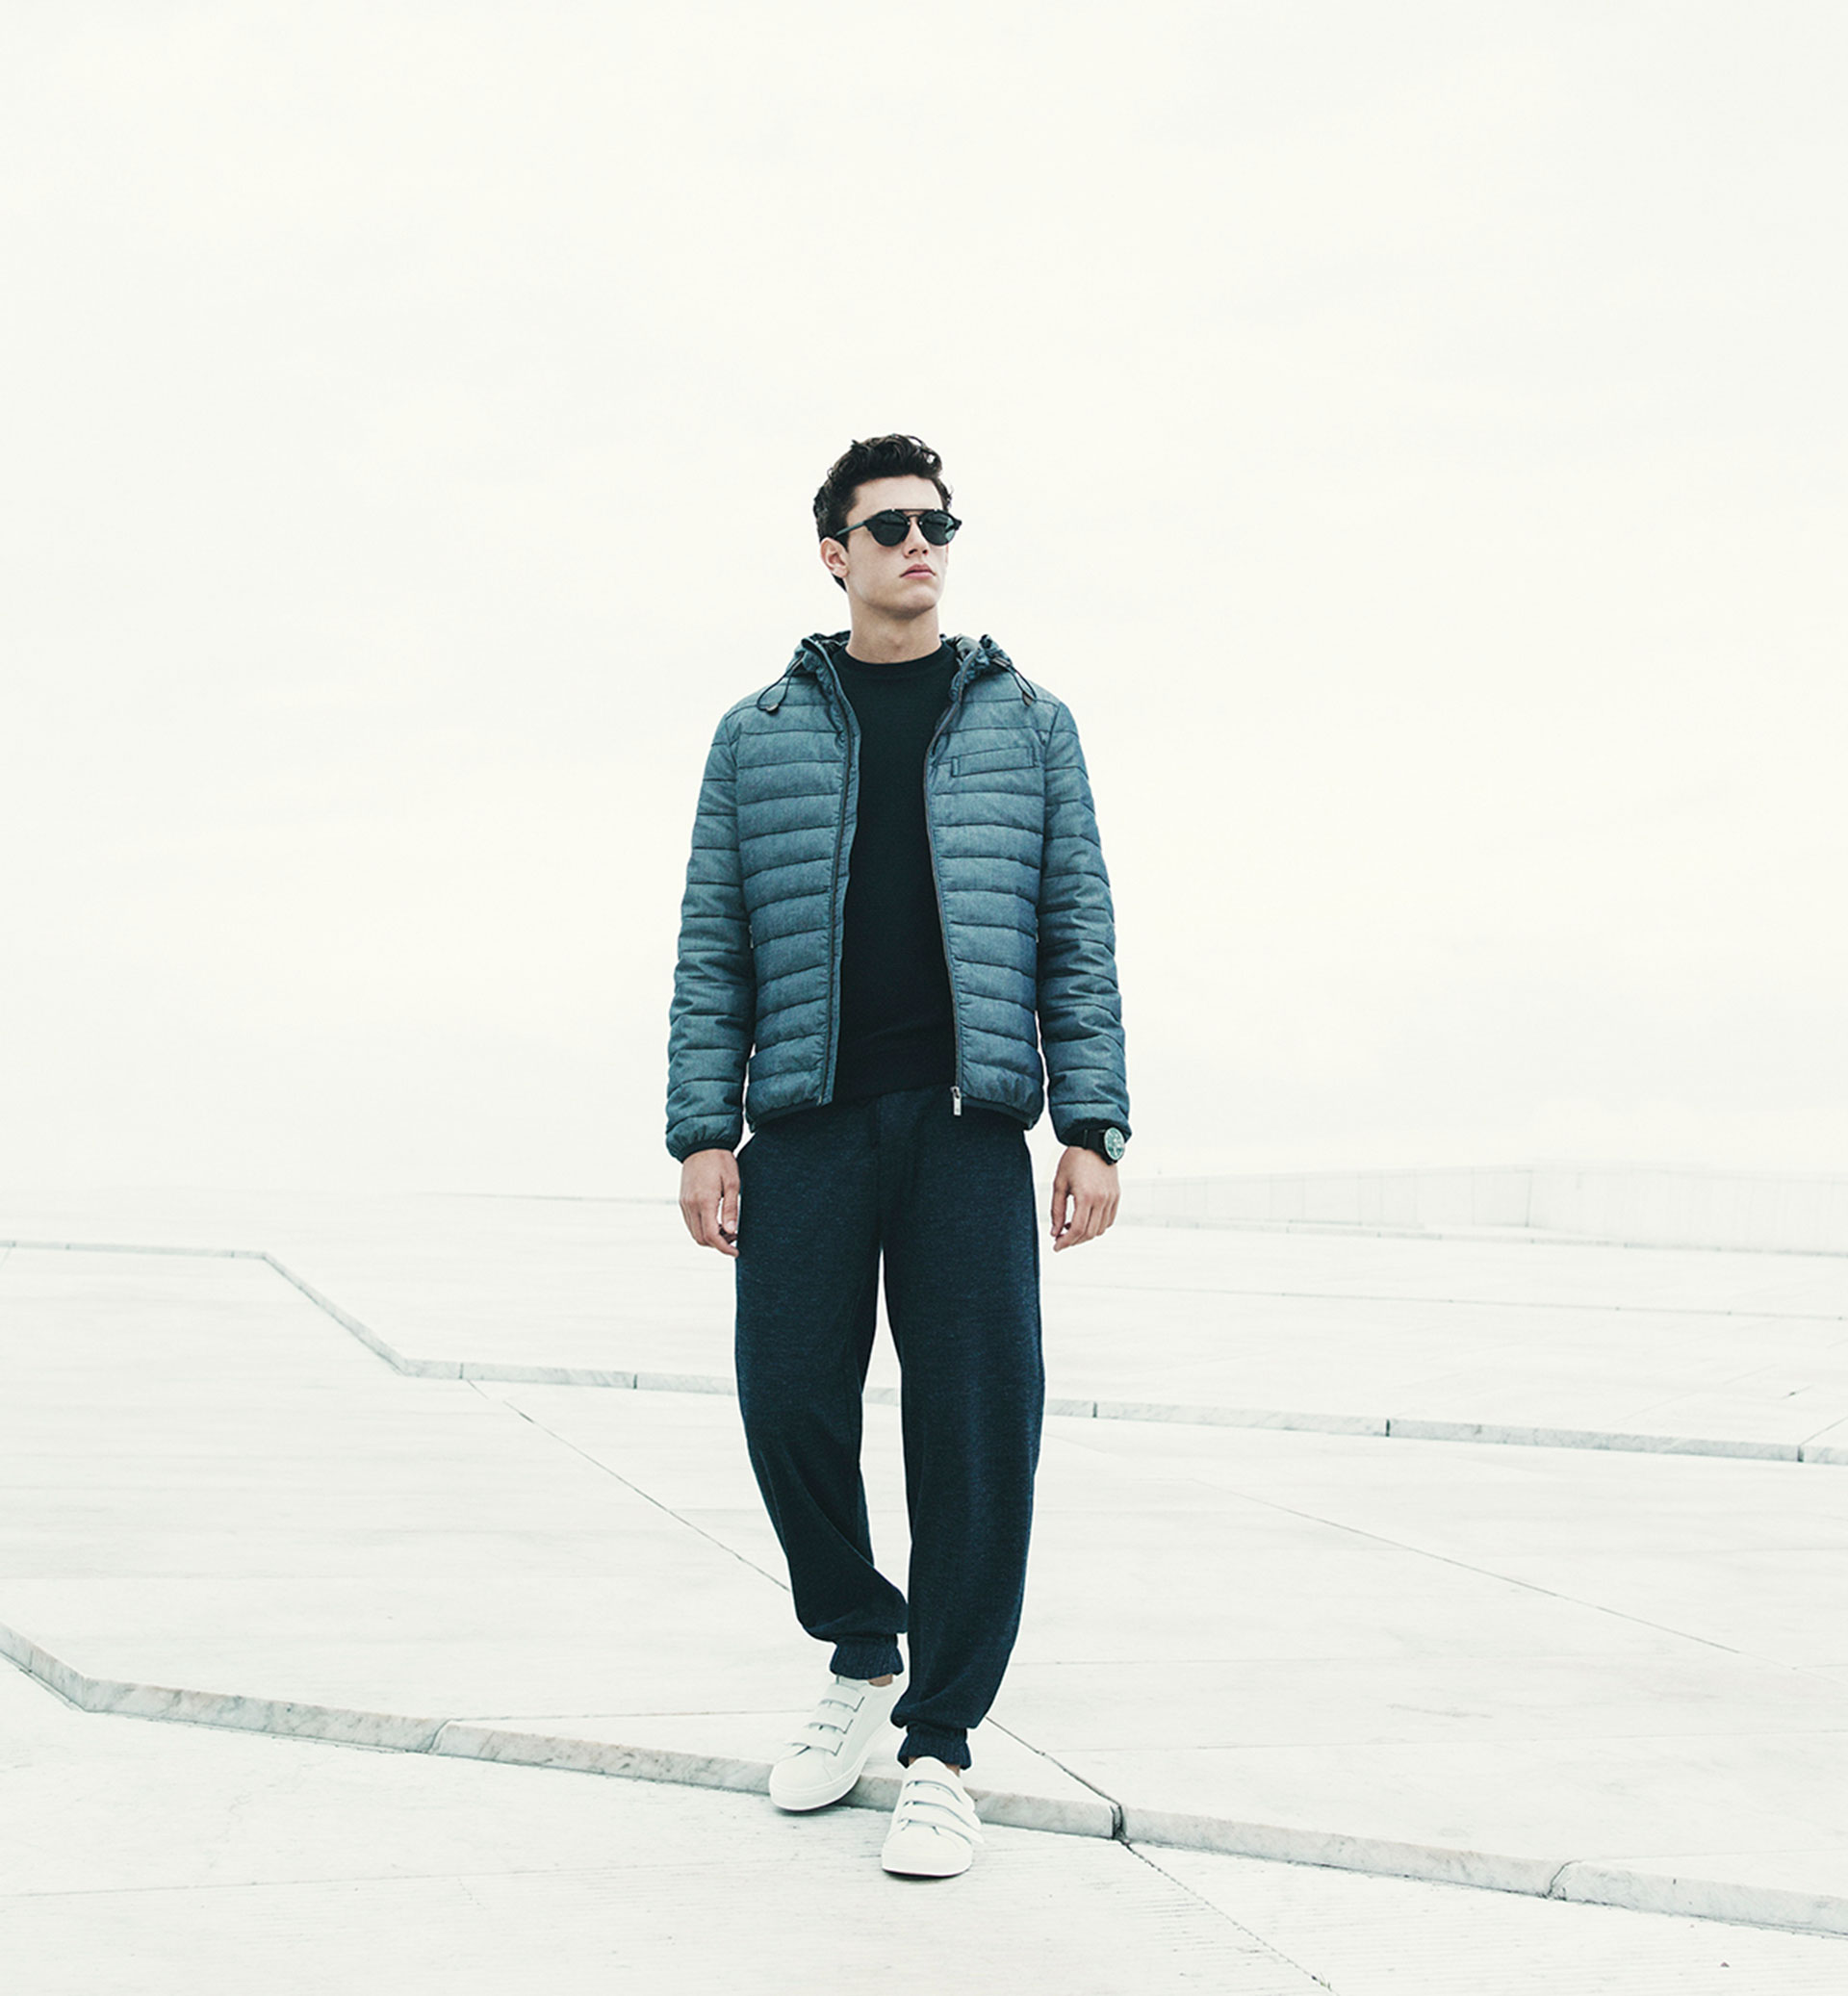 Soft indigo quilted feather down jacket , £109  Soft textured sweatshirt , £54.95  Soft herringbone jogging trousers , £54.95  Soft white leather sneakers with straps , £74.95  Soft polarised sunglasses , £64.95